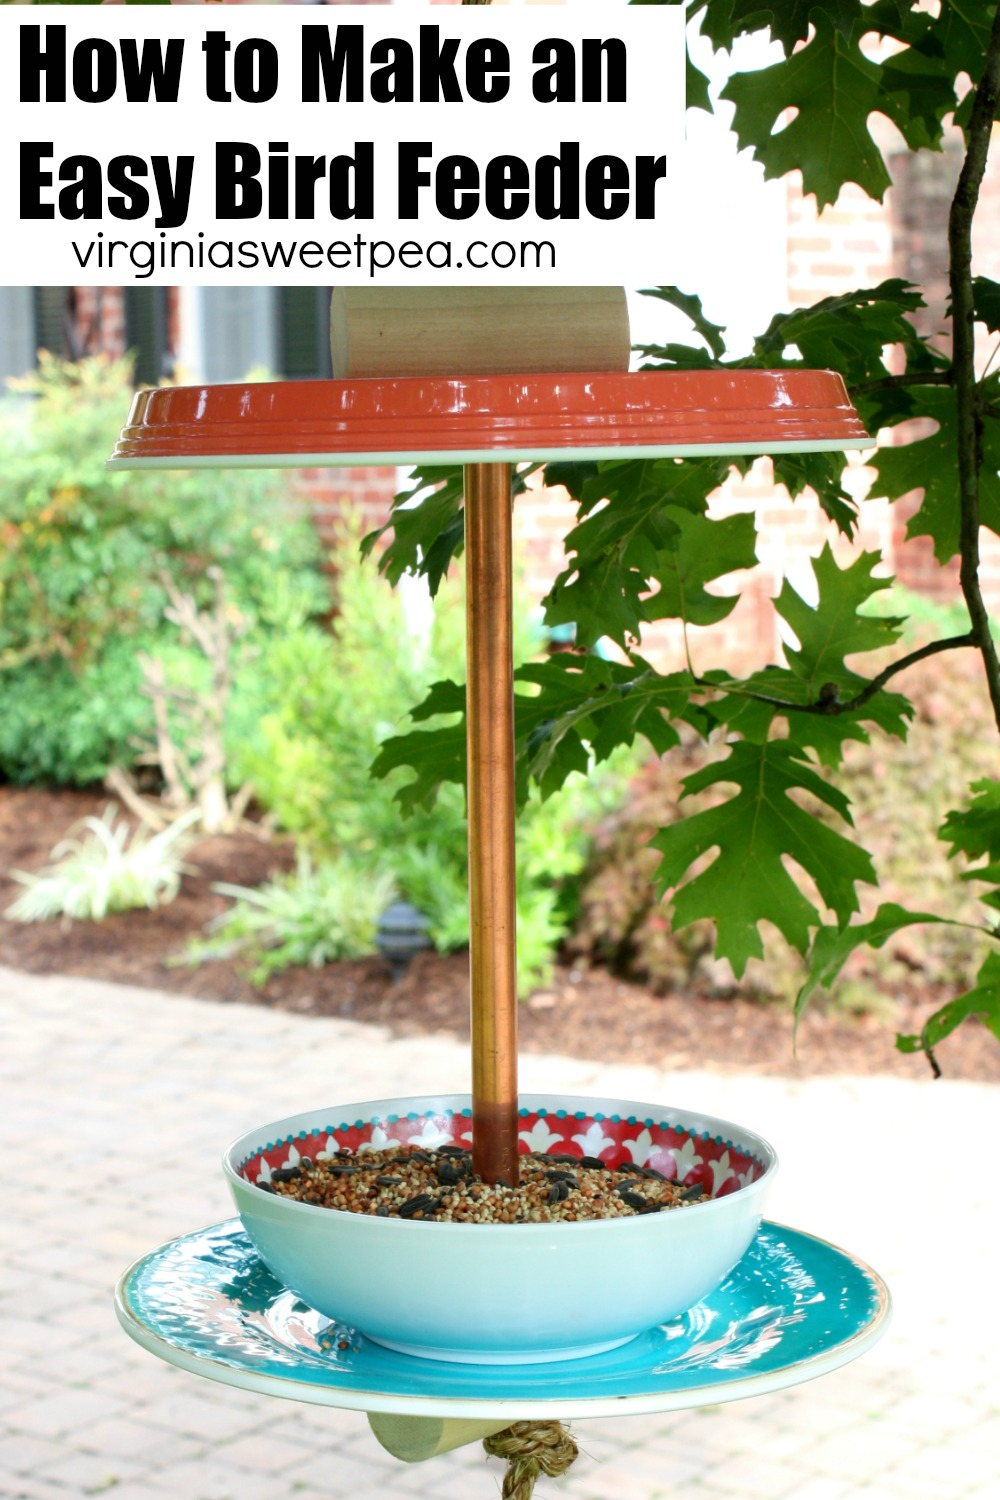 Learn how to make an easy bird feeder with two plastic plates, a plastic bowl, rope, dowel rods, & copper pipe. This is a fun project that birds will love.  #birdfeeder #diybirdfeeder #howtomakeabirdfeeder via @spaula